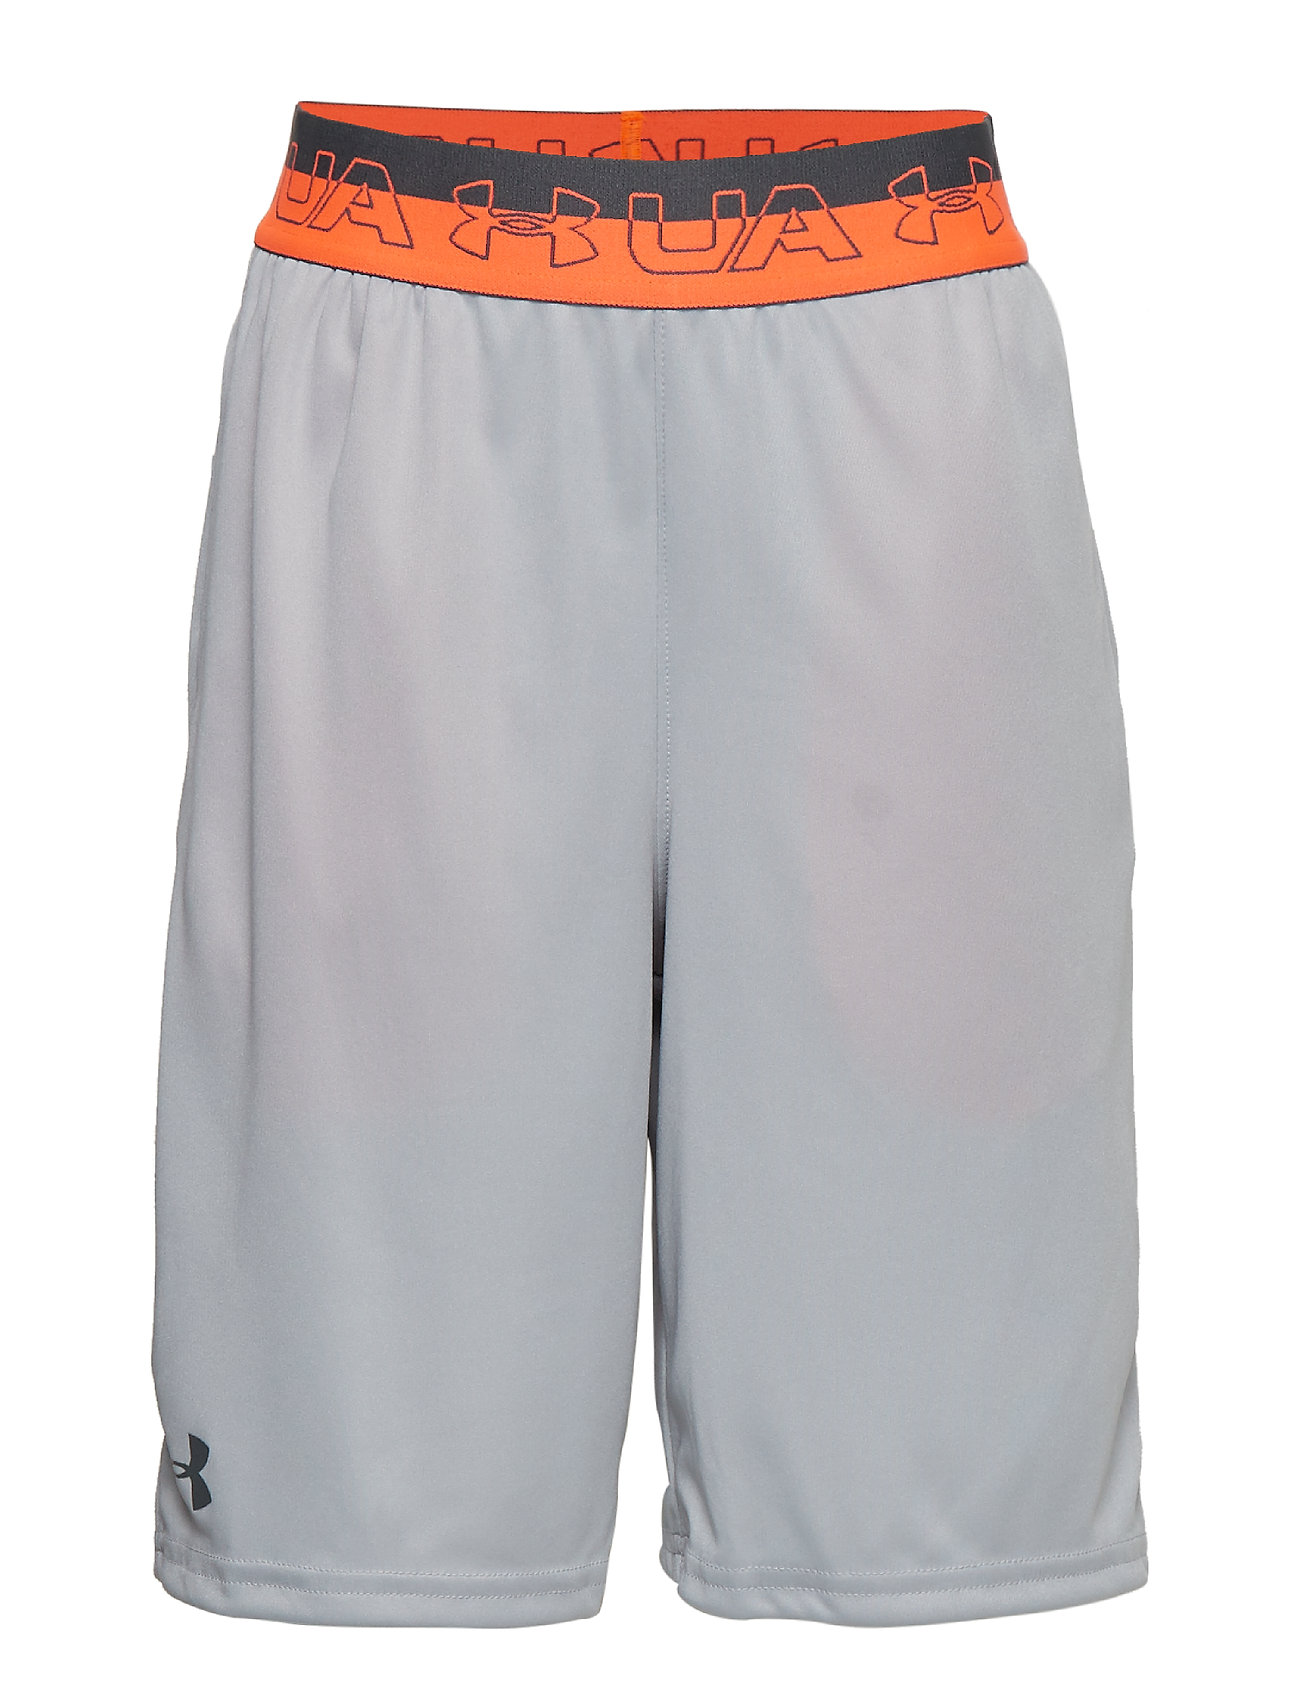 Under Armour Prototype Elastic Short - GRAY